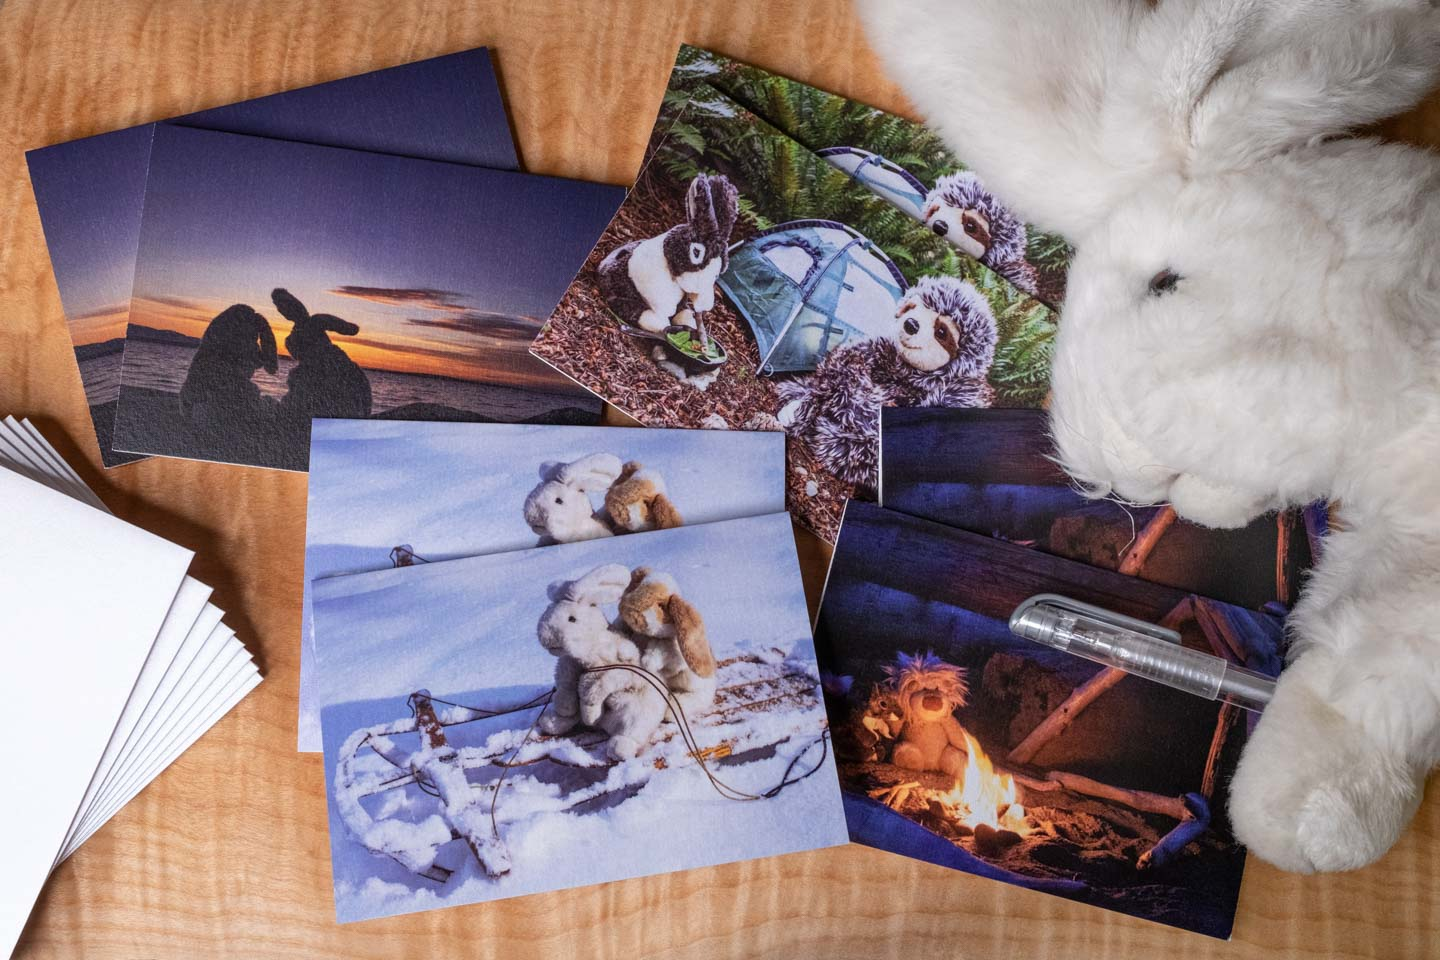 Set of notecards with four different images of stuffed animals hanging out in pairs